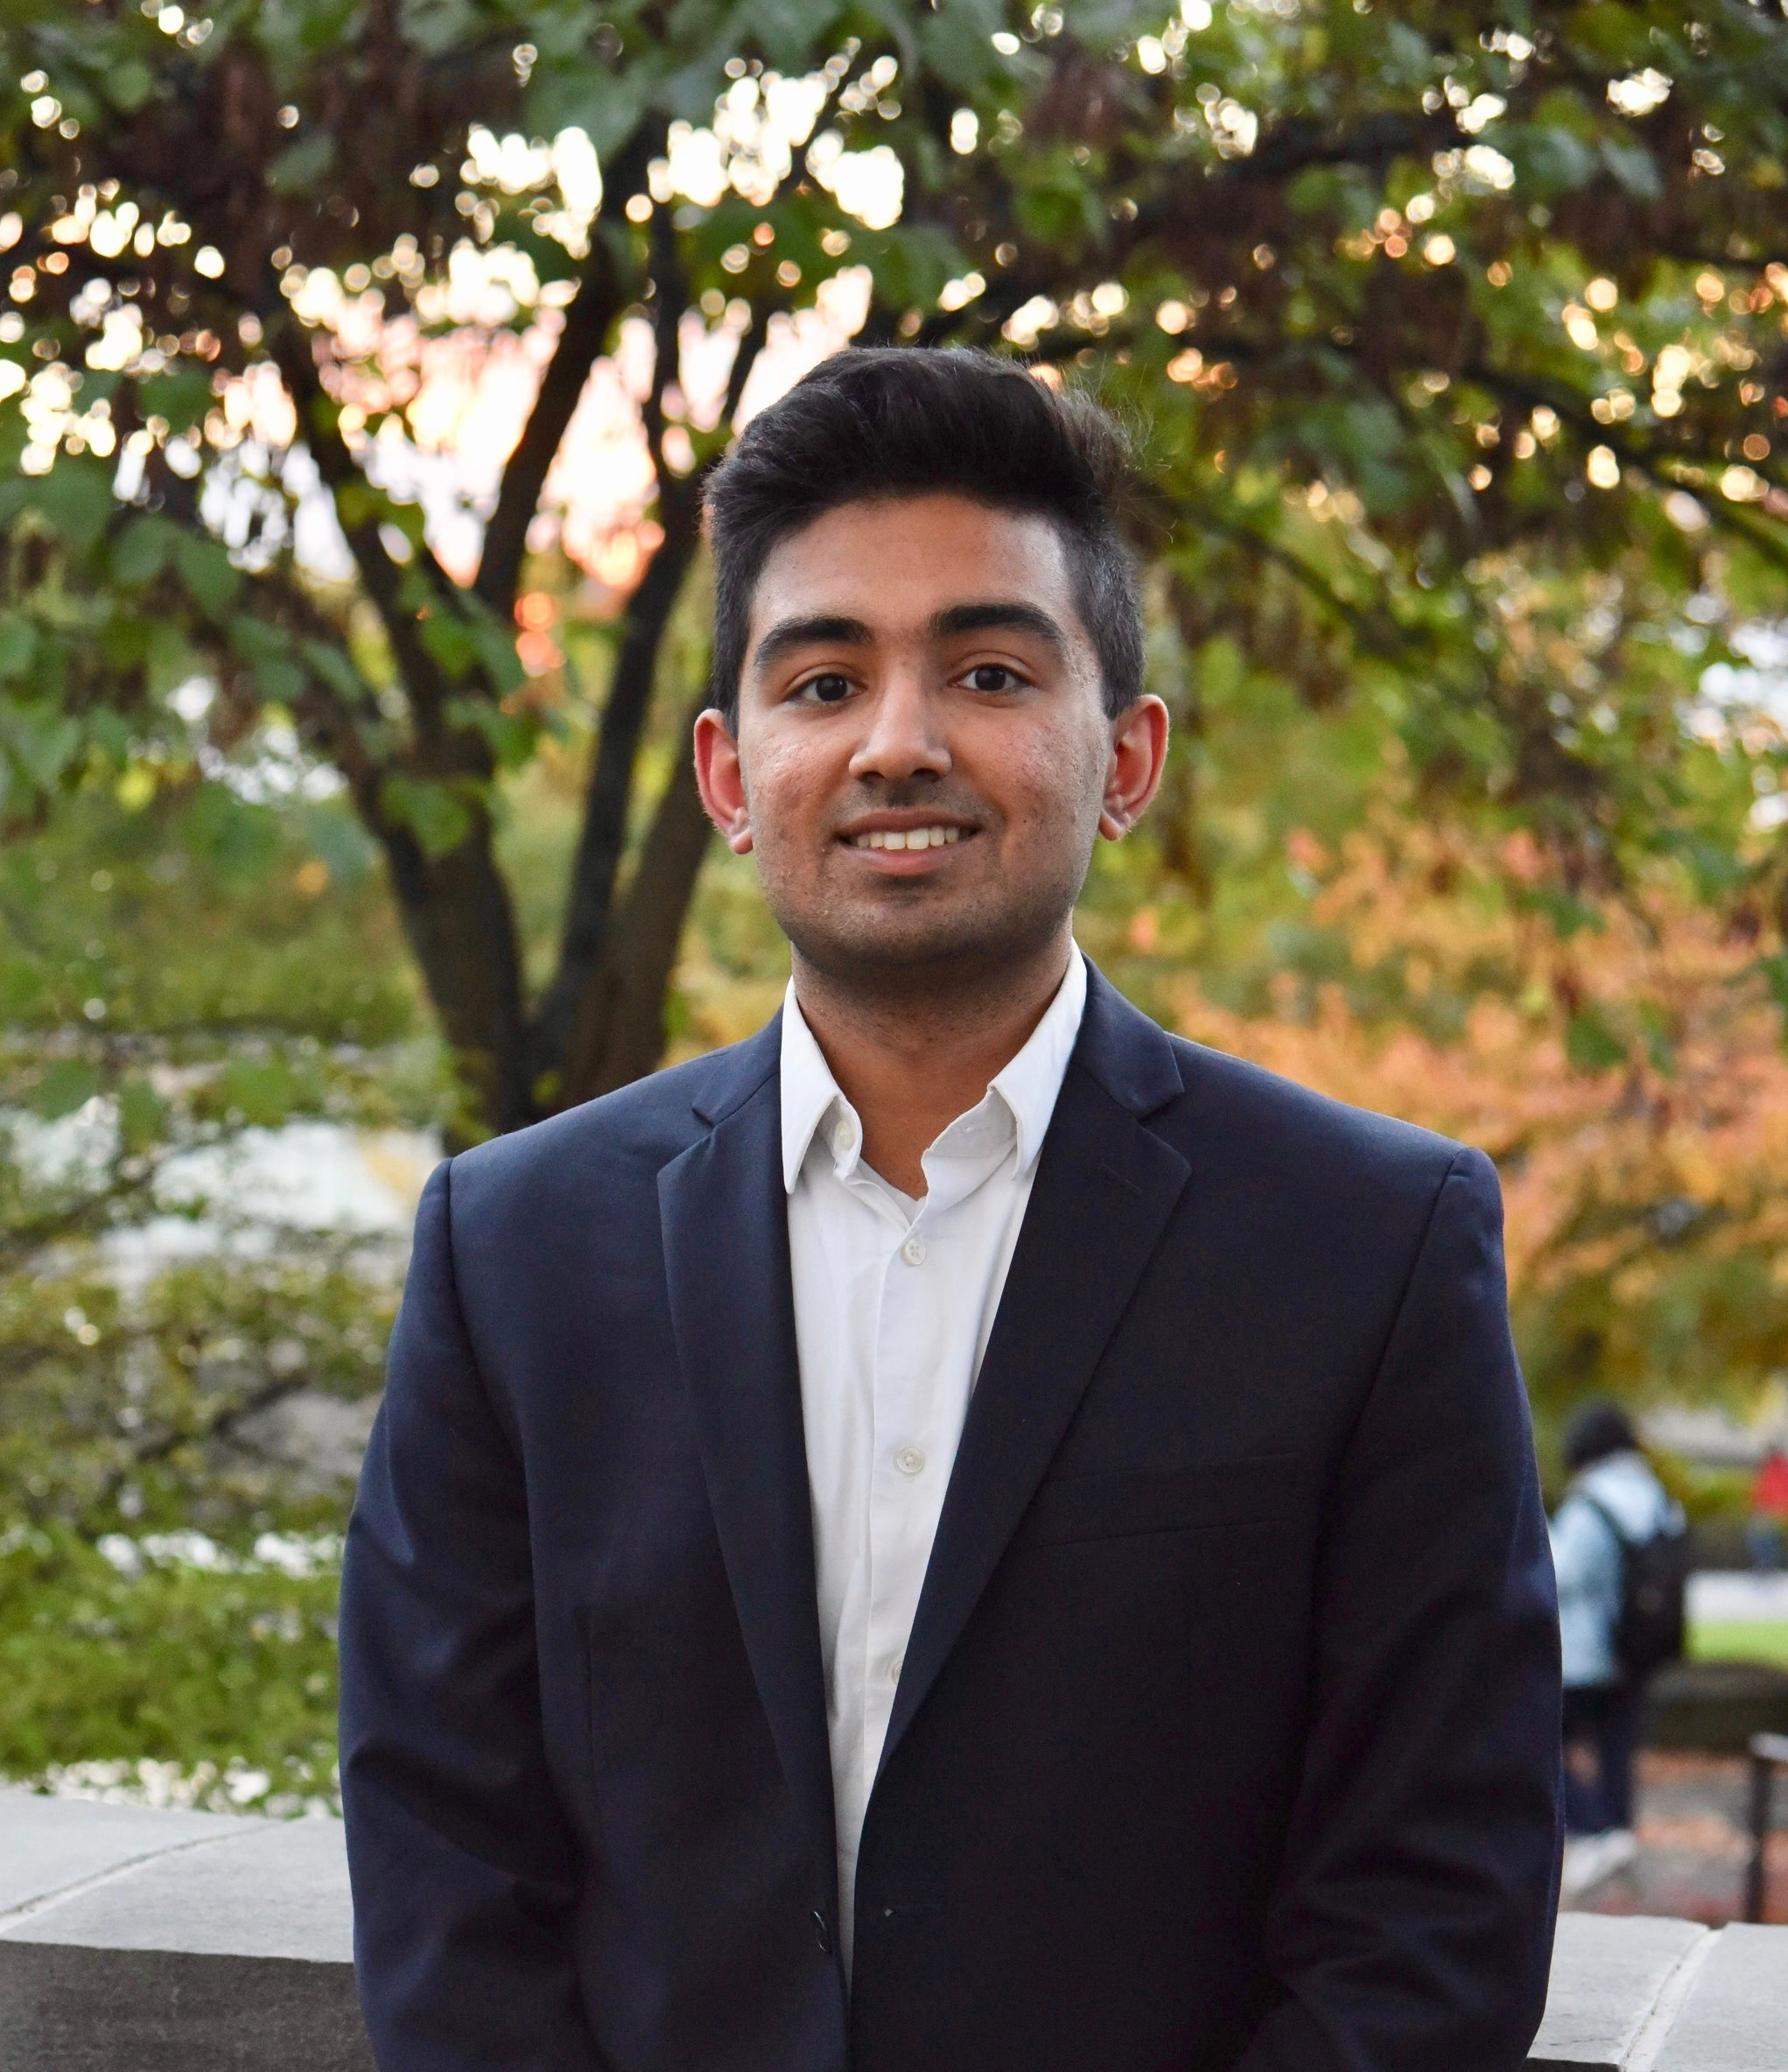 Manan Modi '21 - Major: ILRI knew CBR would provide me with the opportunity to be part of an amazing publication and group of people that would leave a lasting impact for years to come in the Cornell community and beyond. It's an environment of thinkers and innovators who challenge and debate emerging societal issues in the world of business.